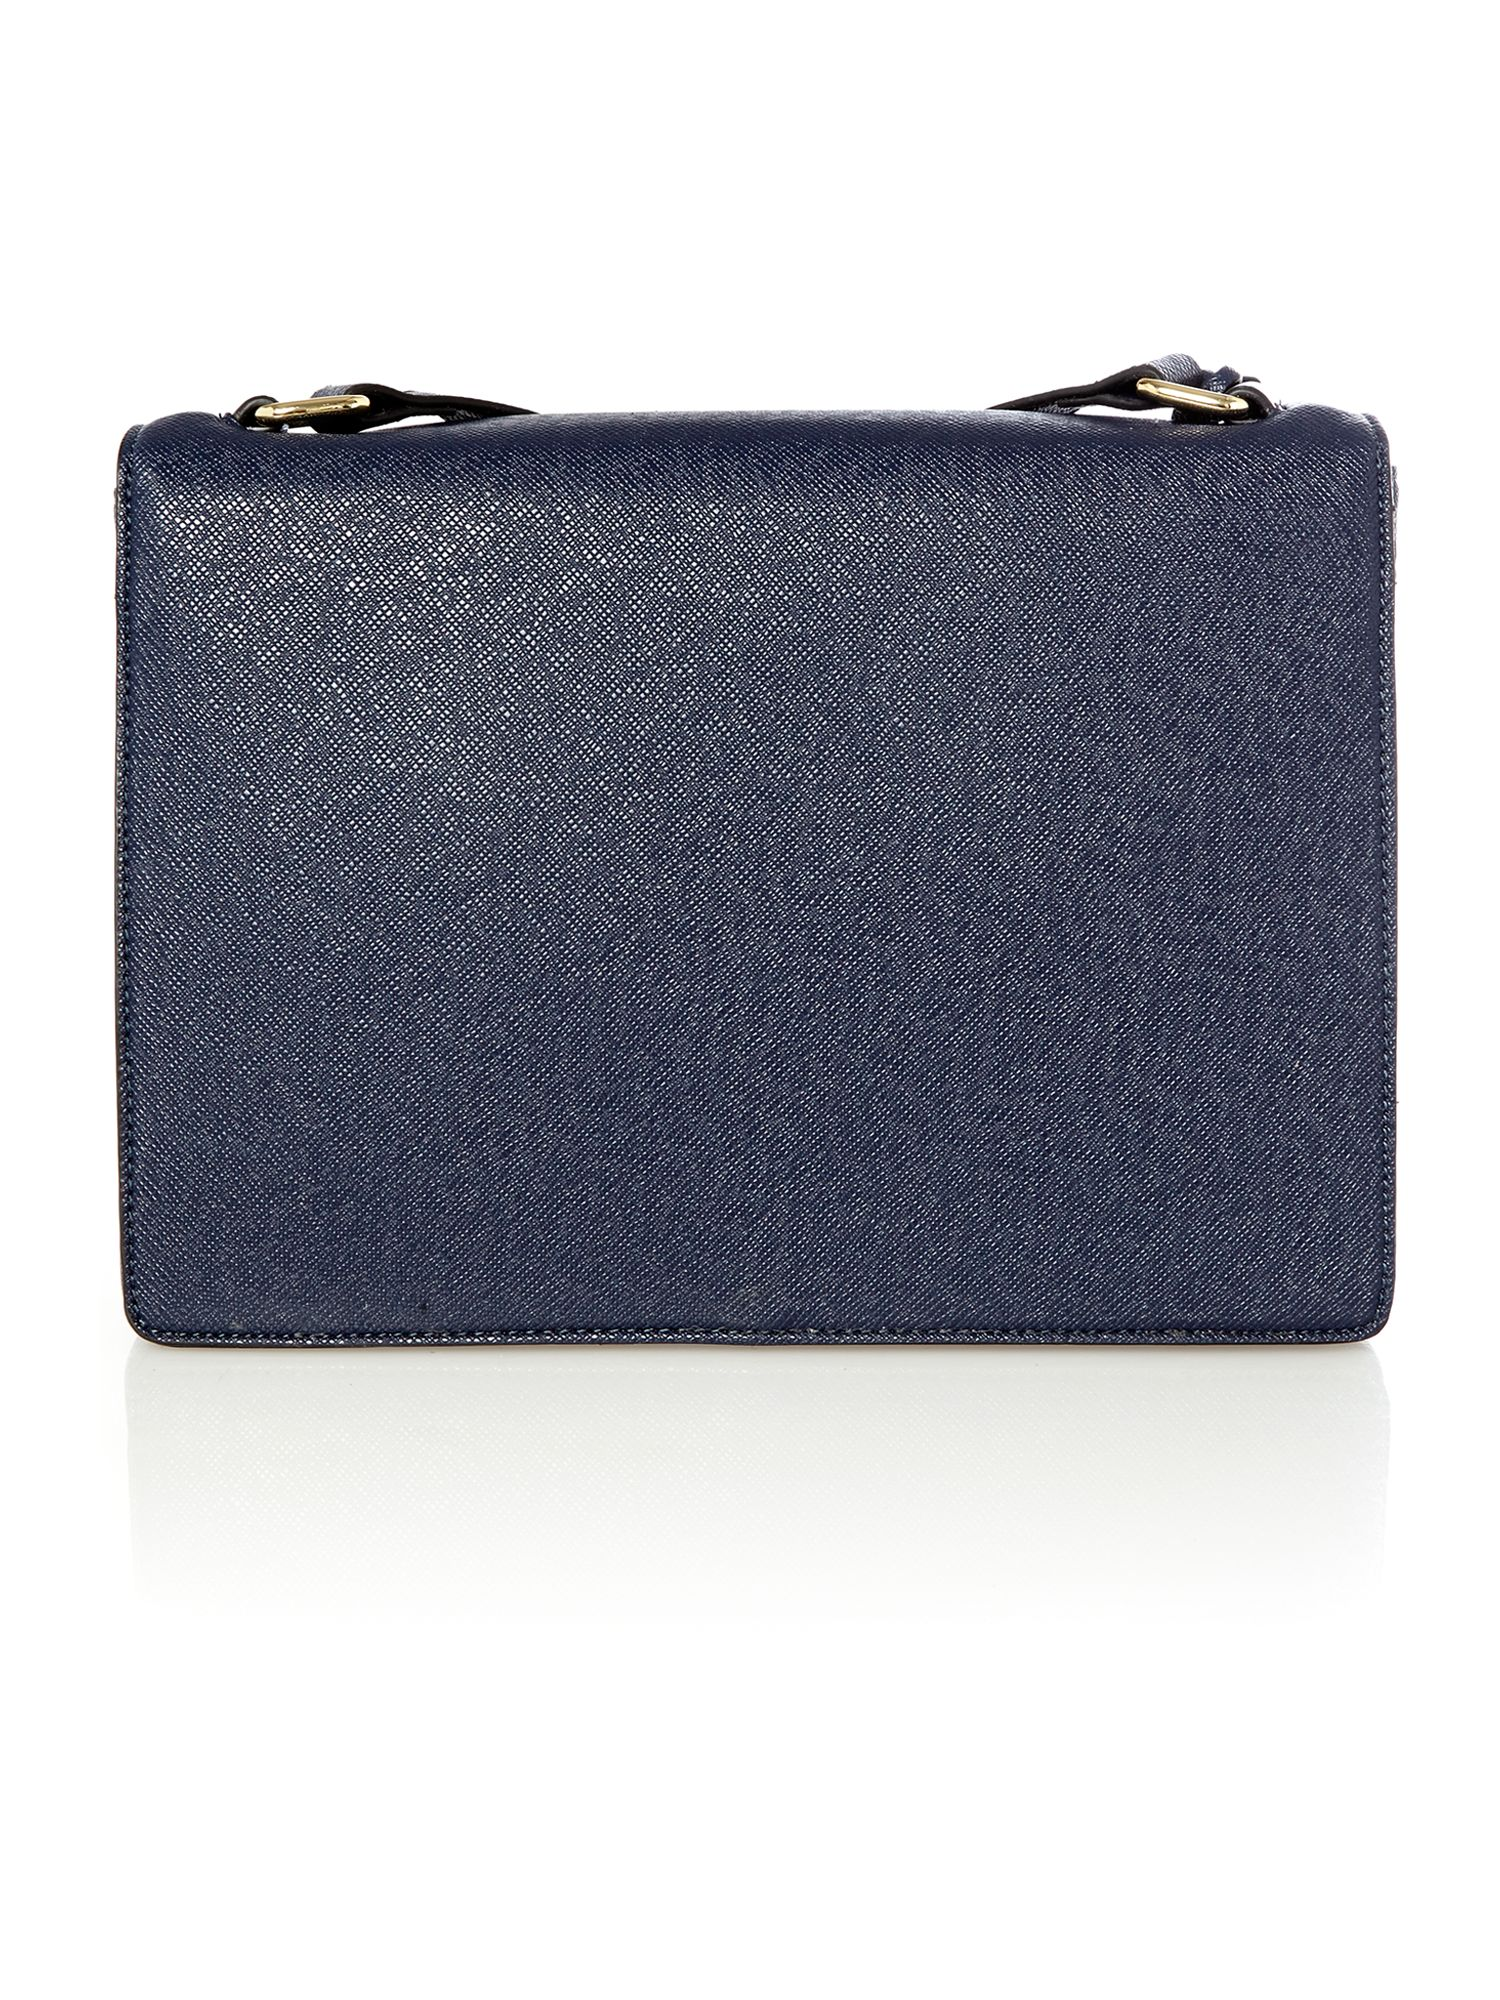 Navy large saffiano flapover shoulder bag